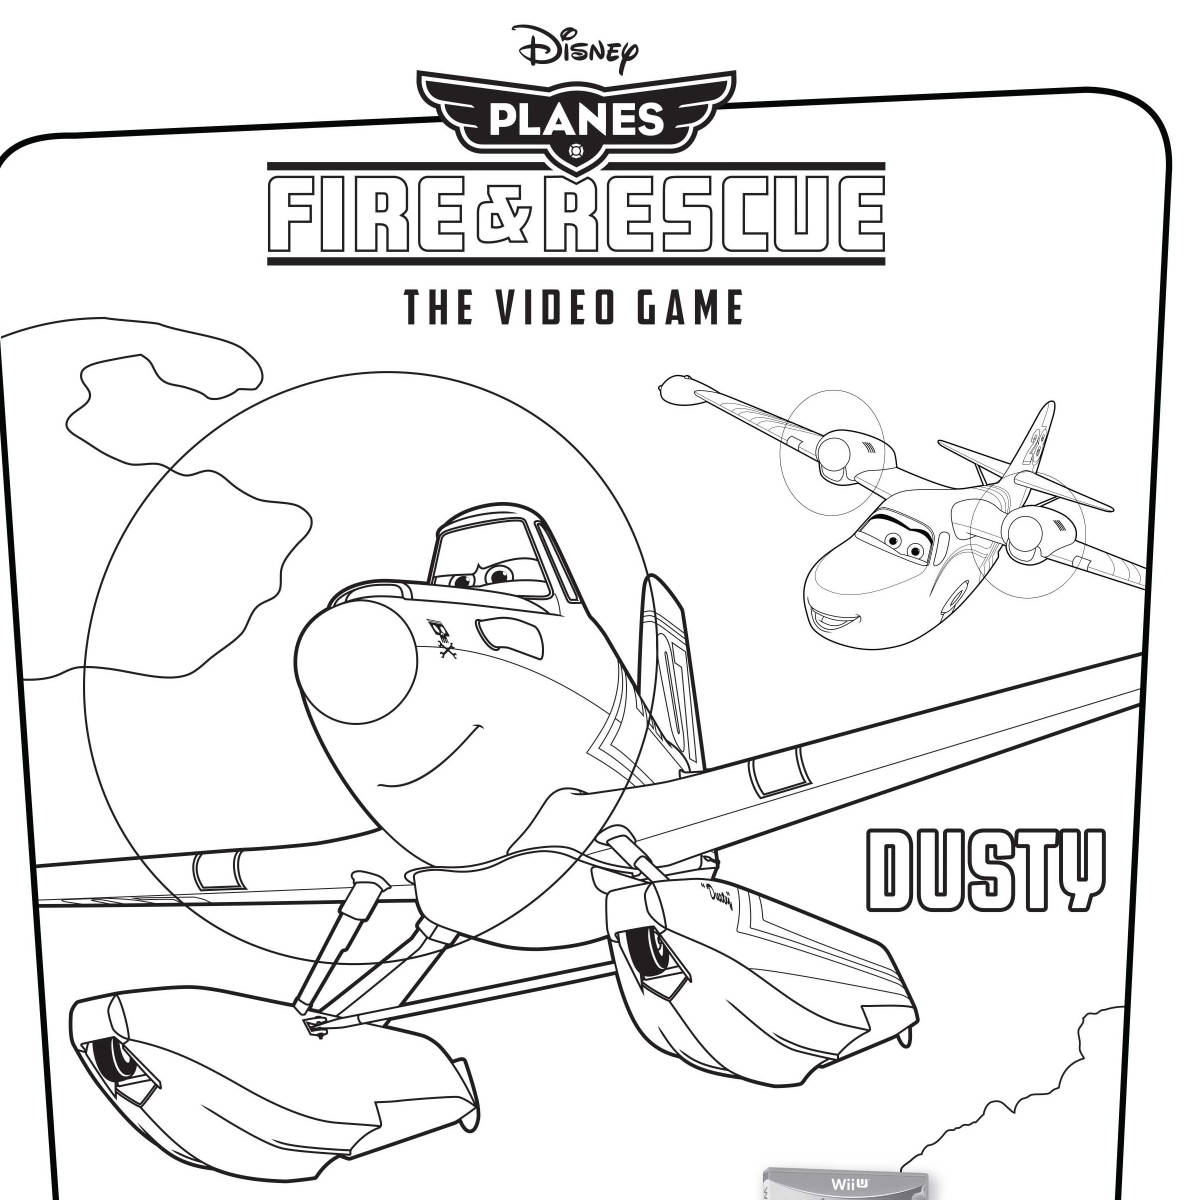 Dusty Planes Drawing at GetDrawings.com | Free for personal use ...